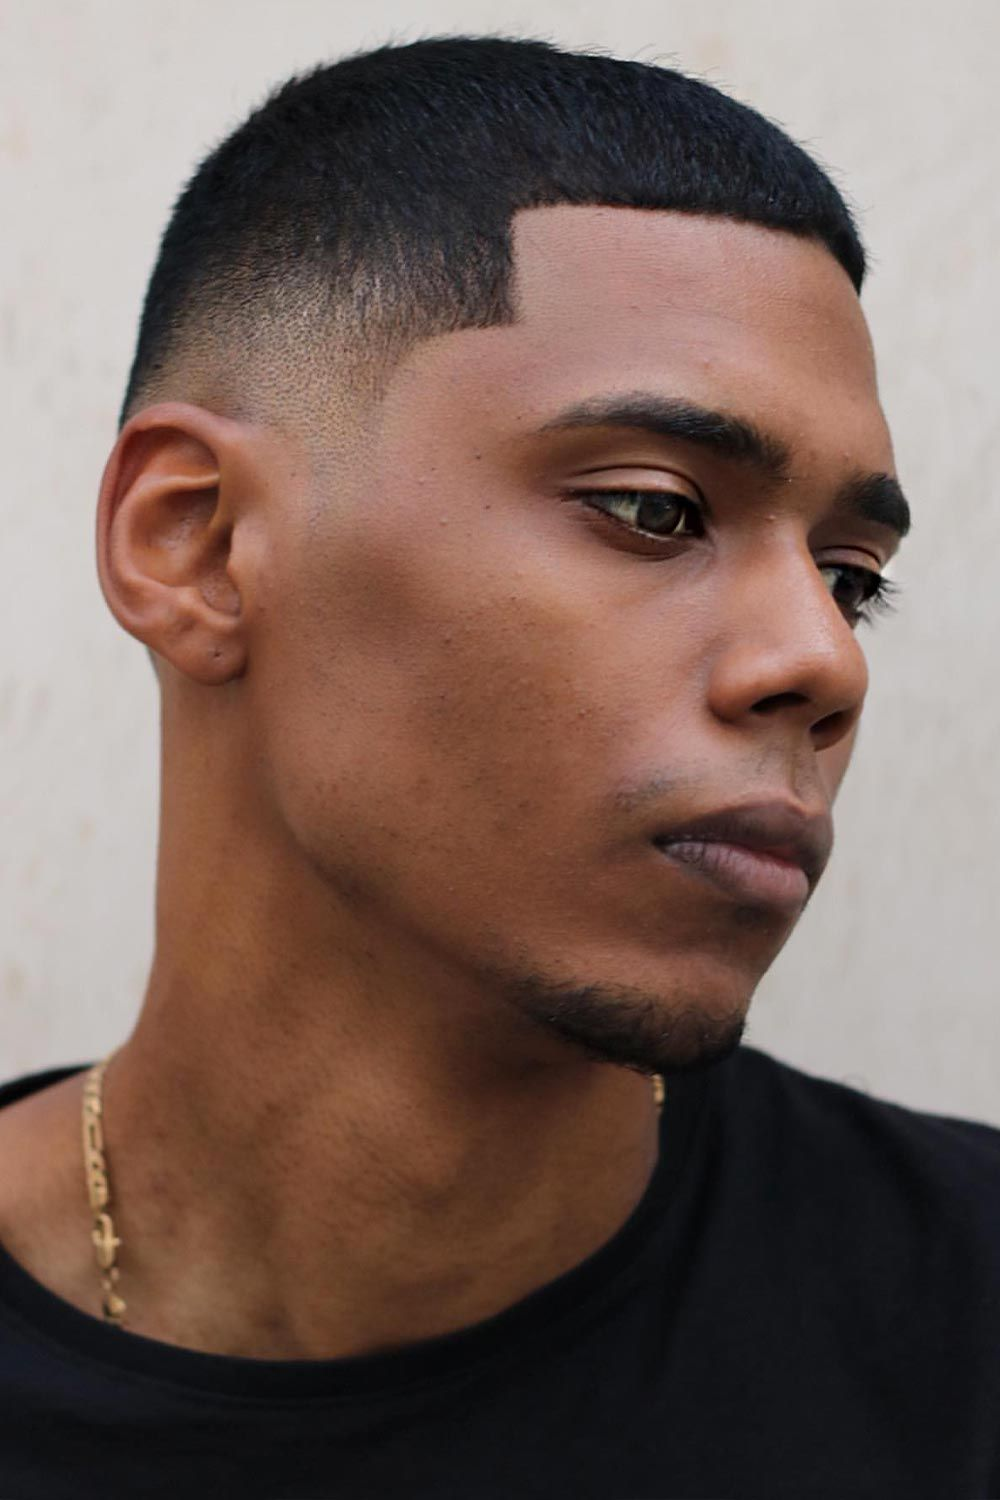 Tips And Tricks To Know About Fade Haircut Menshaircuts Com In 2020 Haircuts For Men Fade Haircut Low Taper Fade Haircut